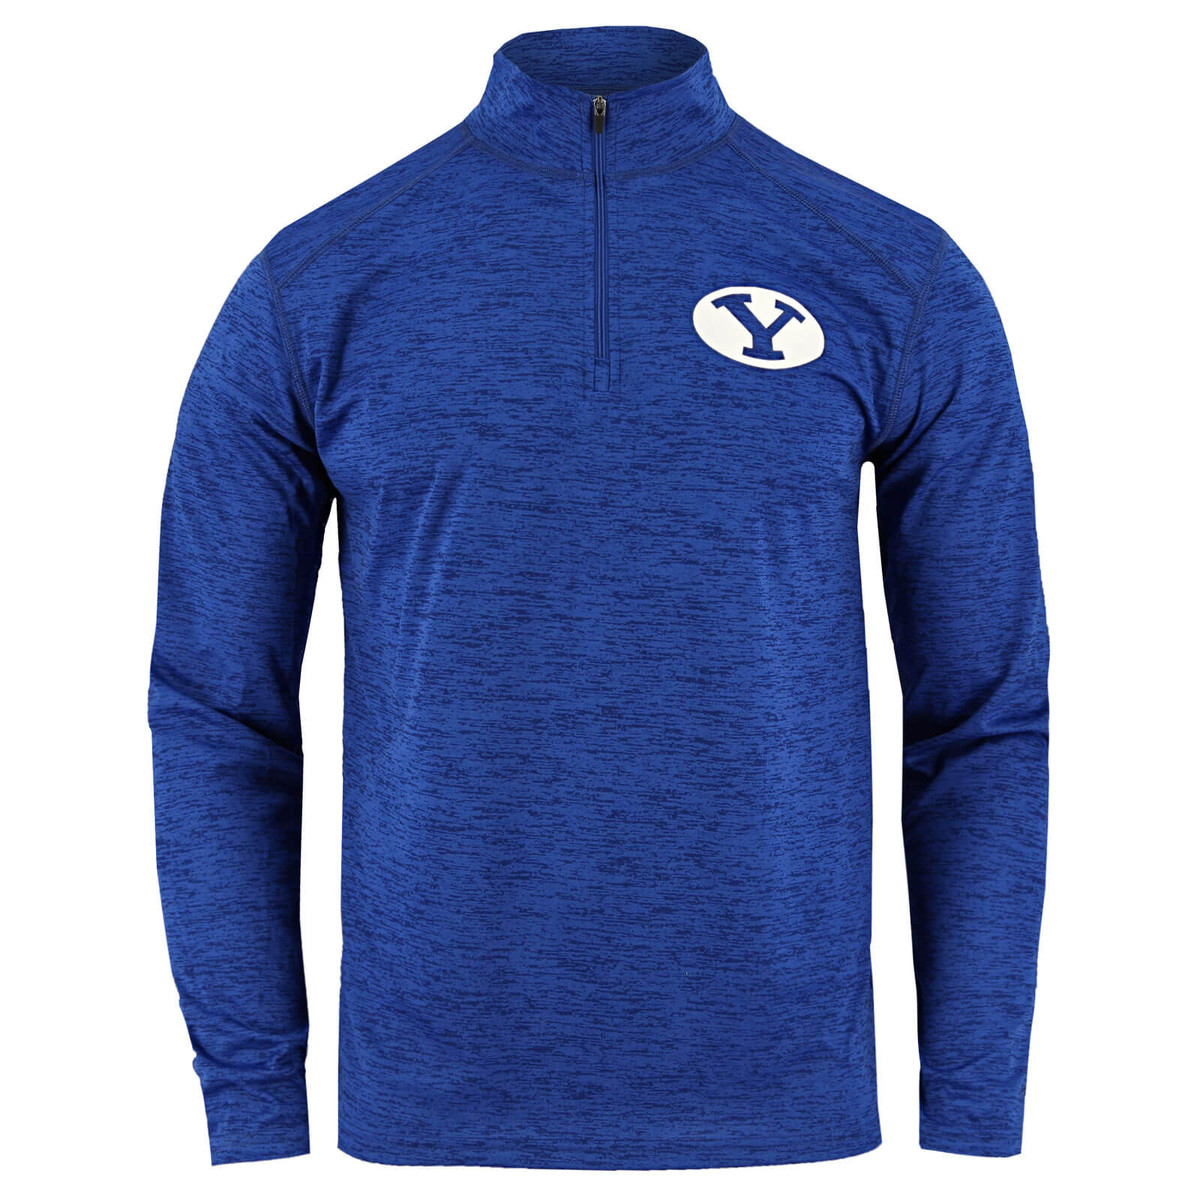 a3810203 Men's BYU Jackets, Official Apparel and Gear